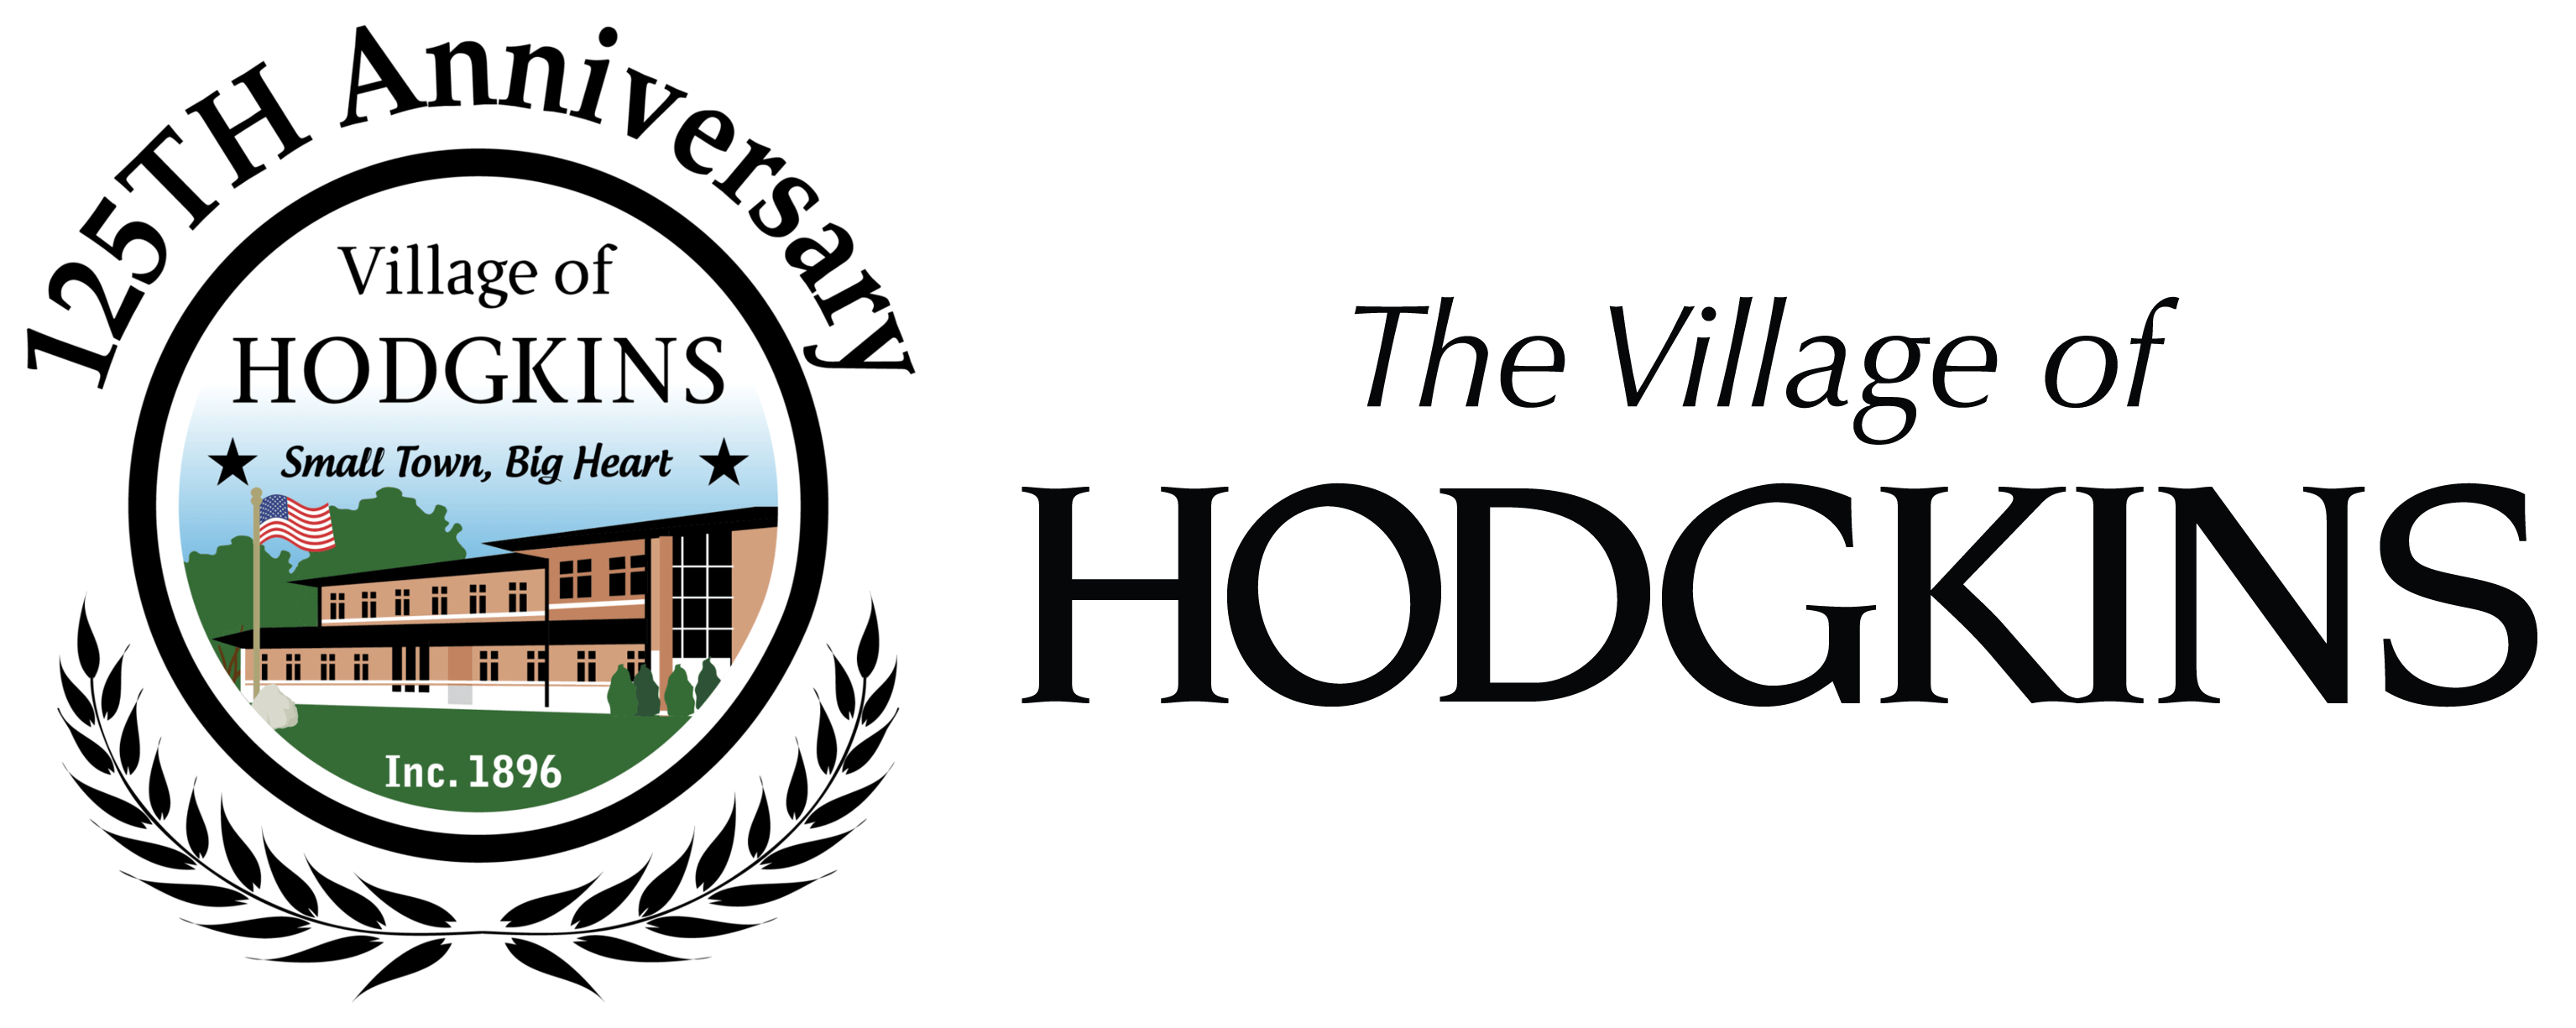 Village of Hodgkins logo